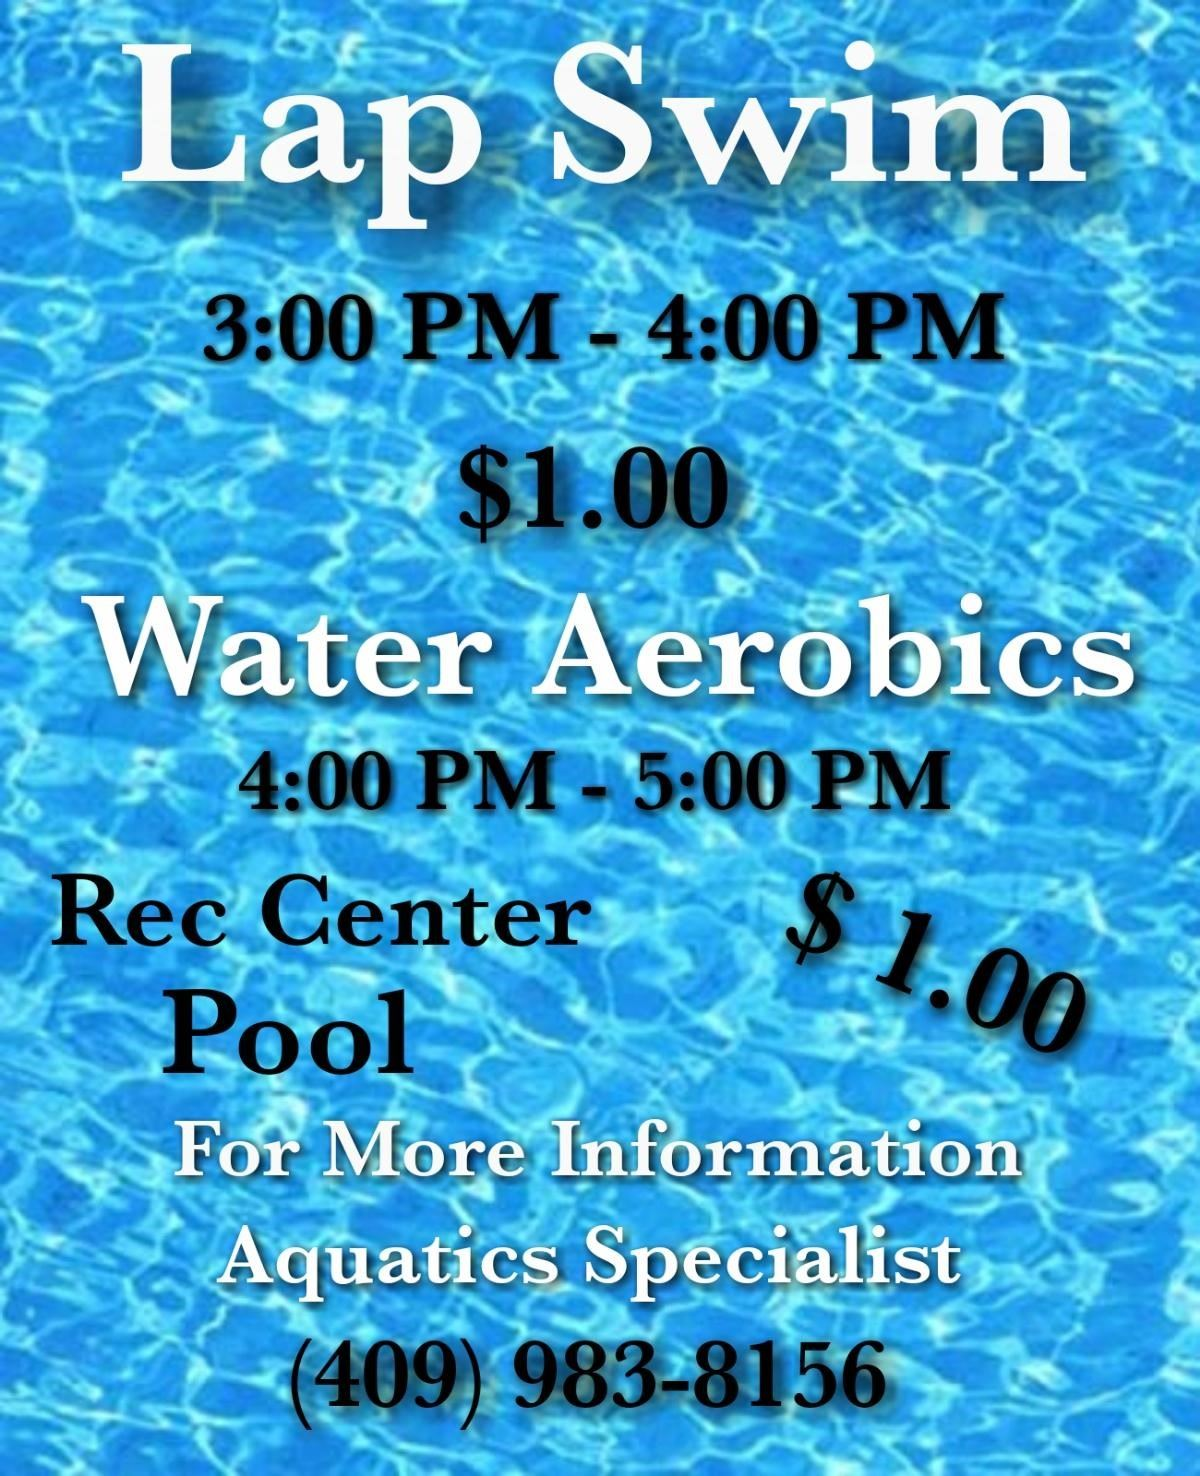 Lap Swim and Water Aerobics